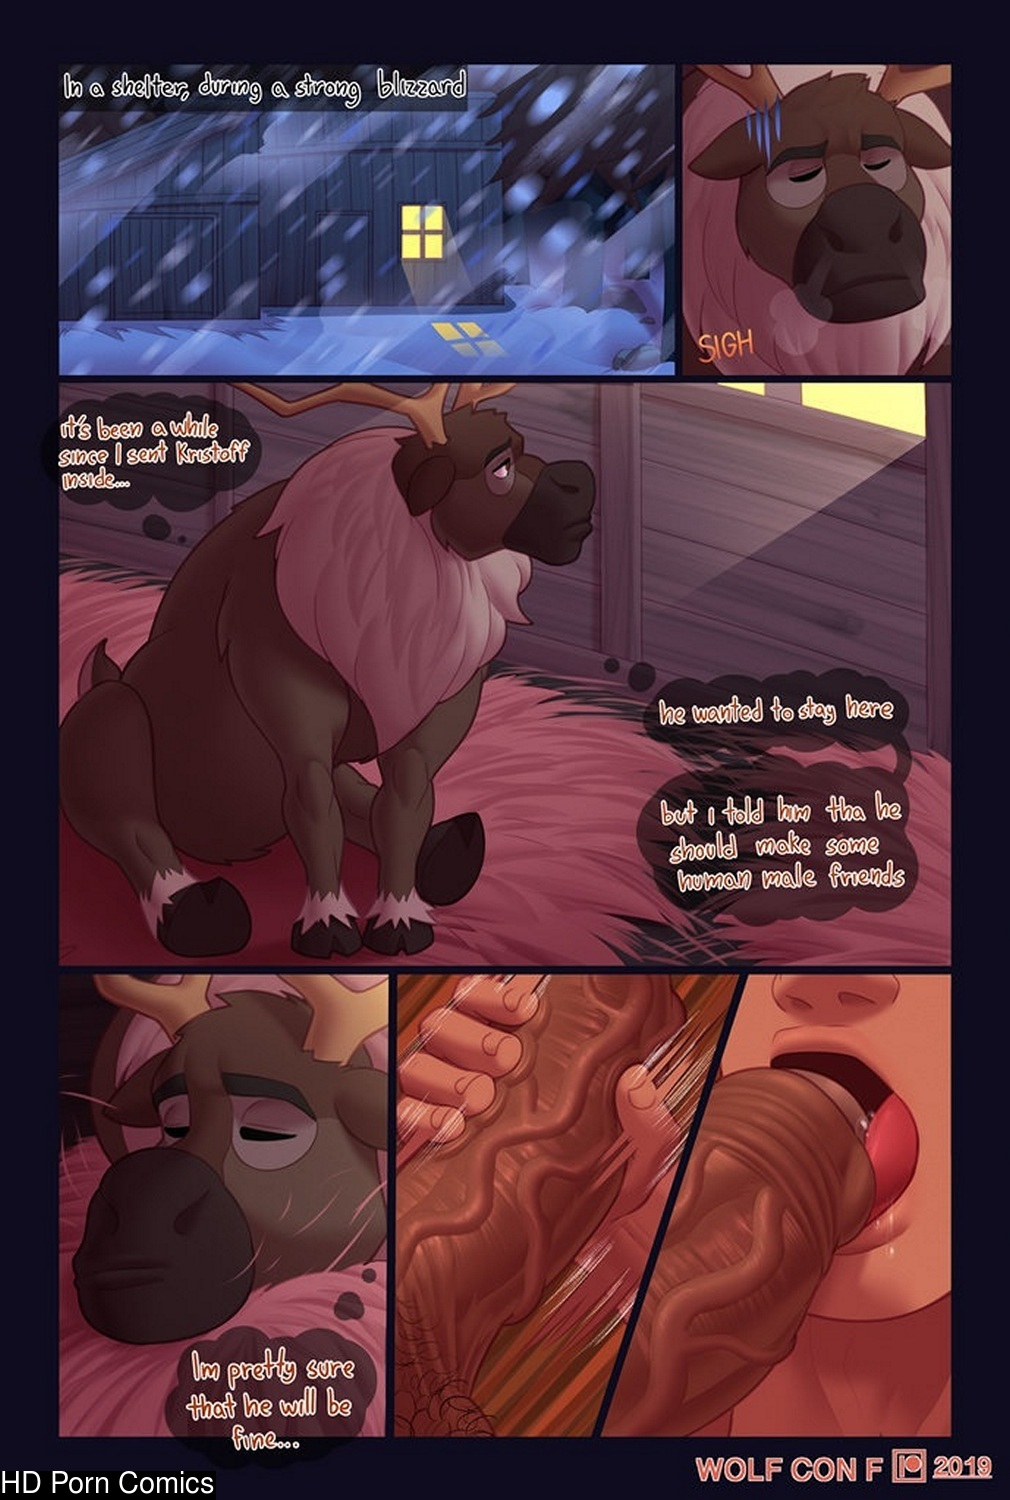 The Creamy Storm gay furry comic